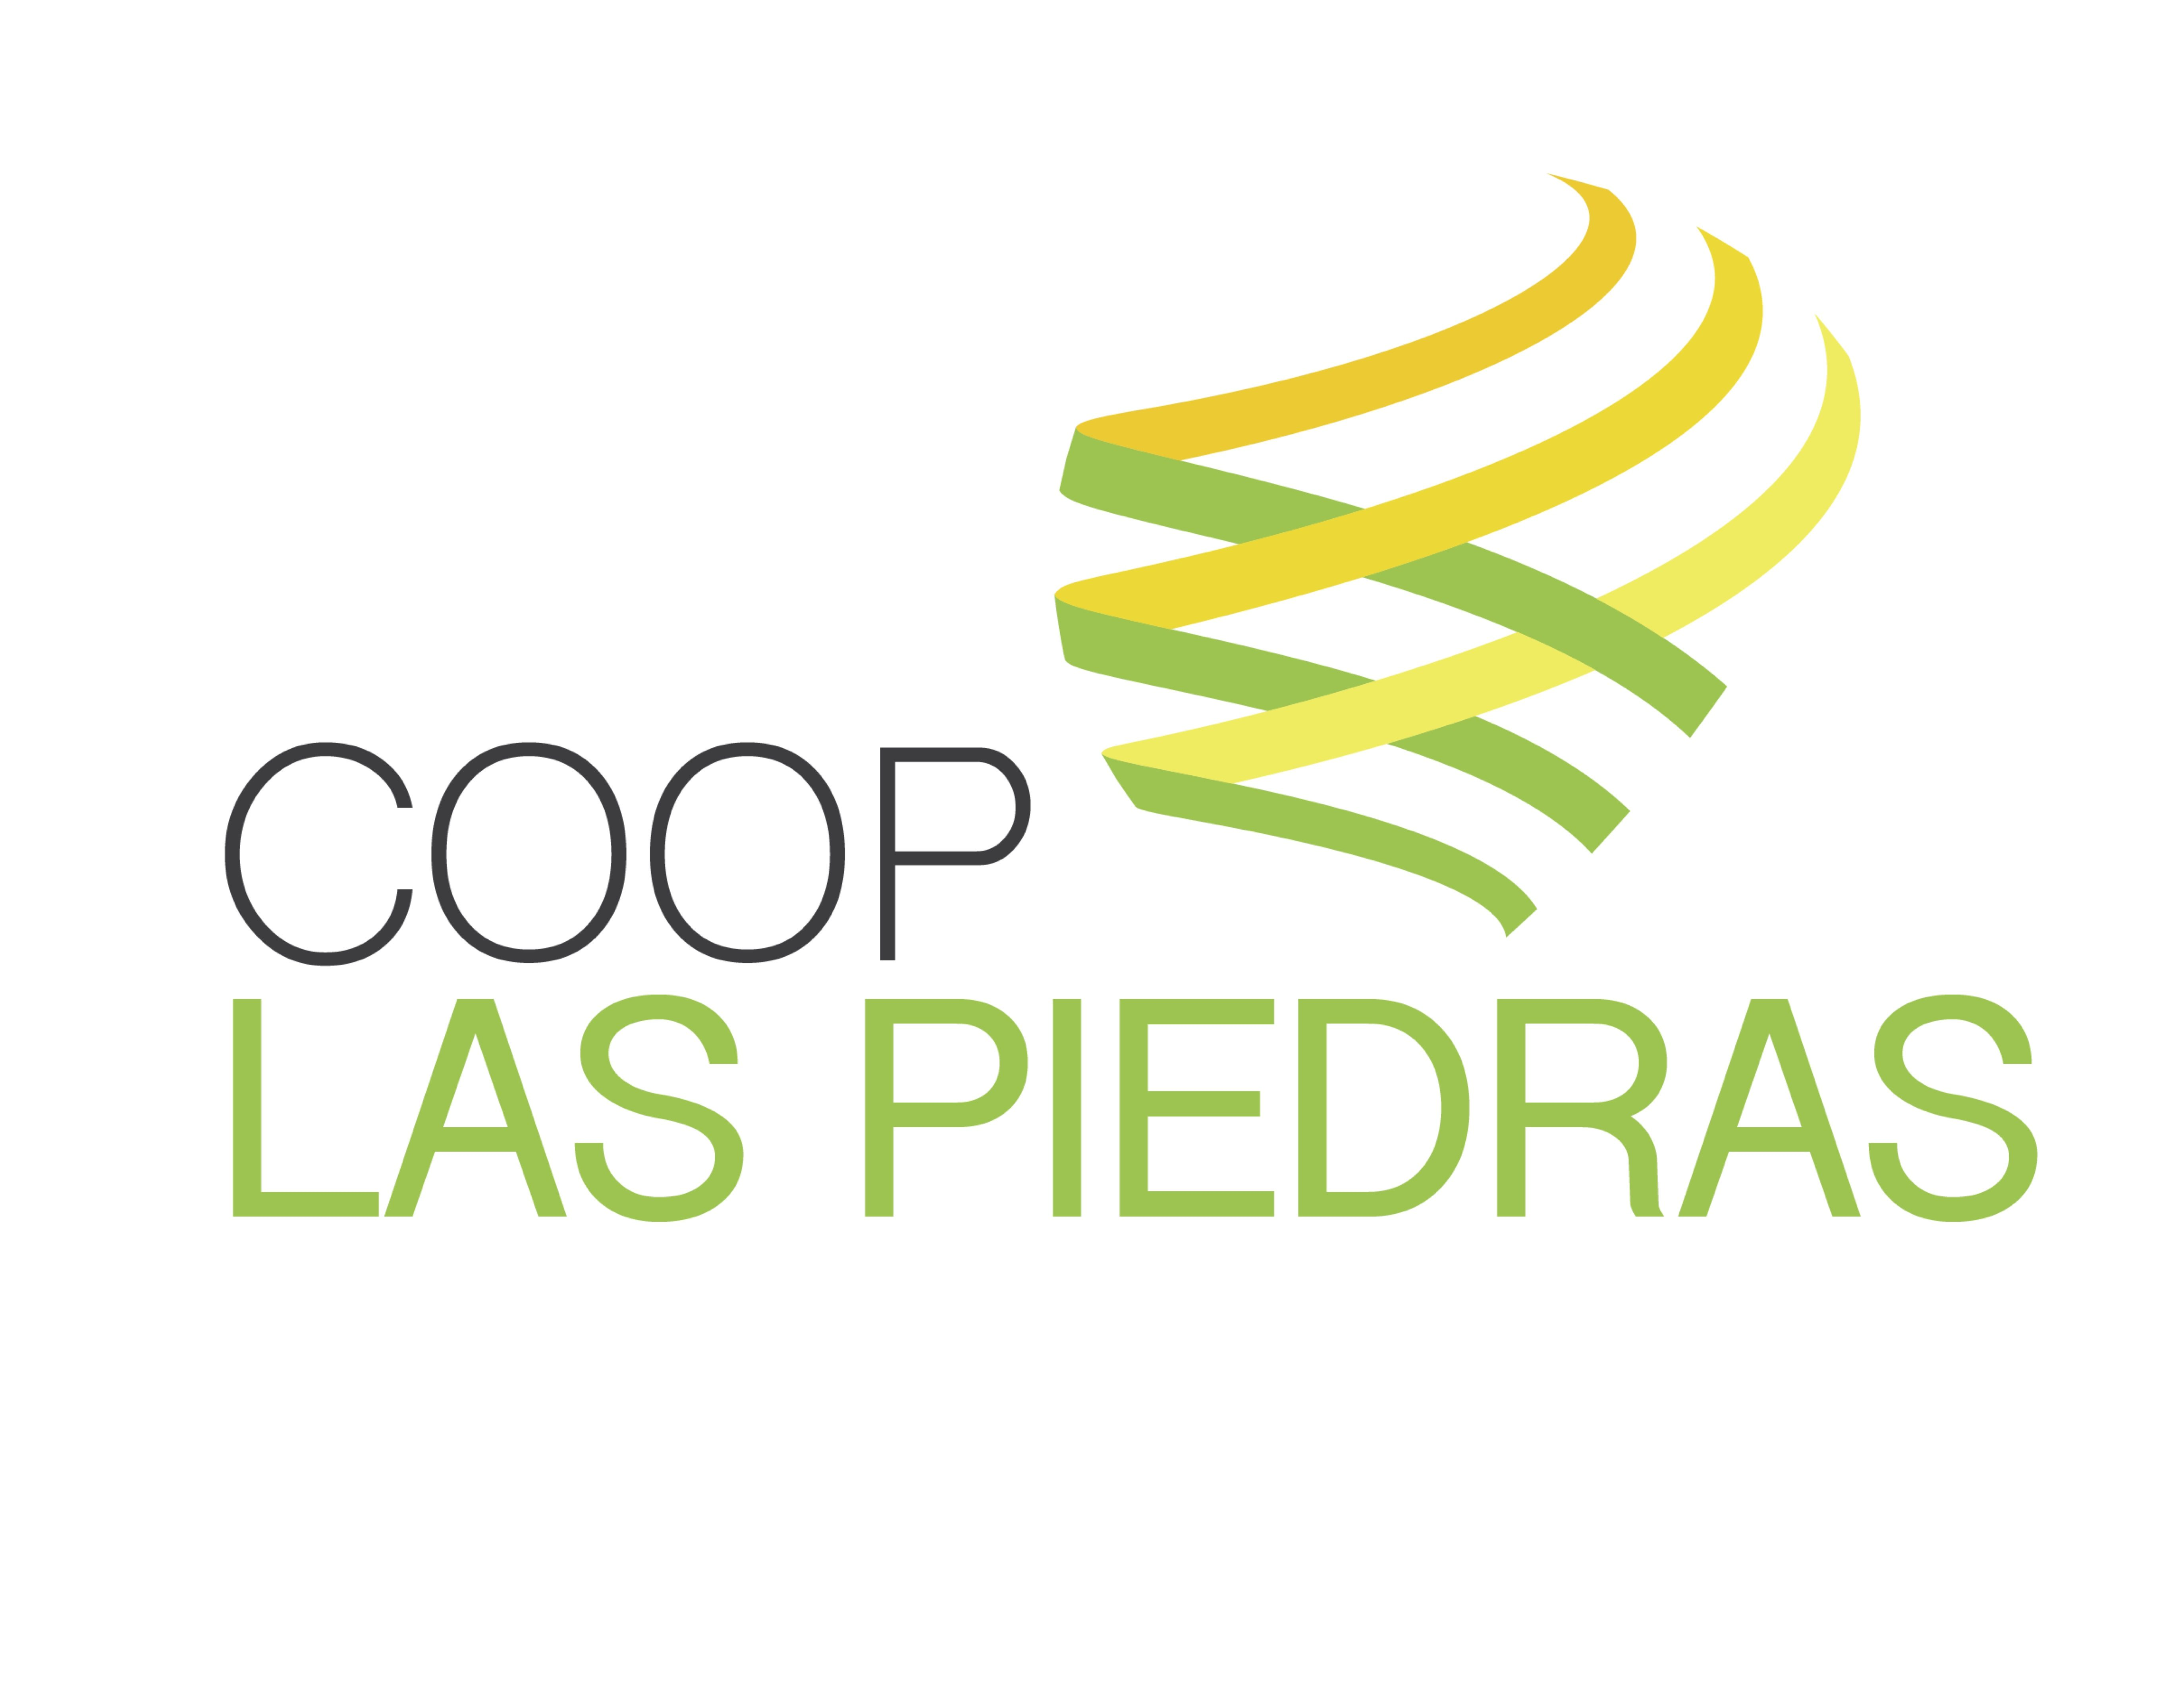 las piedras senior personals Find women seeking men listings in las vegas on oodle classifieds join millions of people using oodle to find great personal ads don't miss what's happening in your neighborhood.